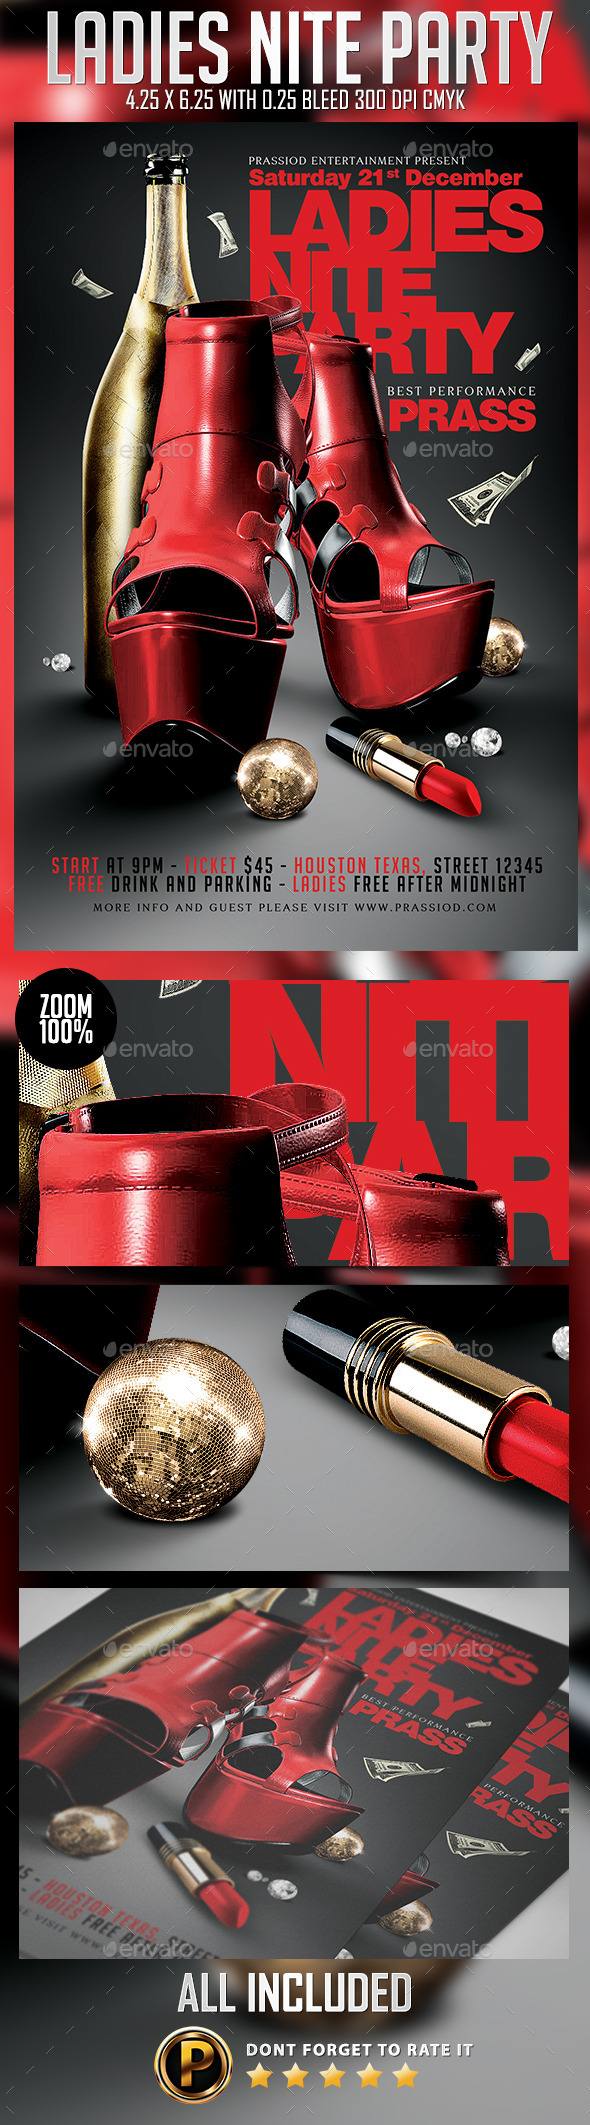 Ladies Nite Party Flyer Template - Clubs & Parties Events